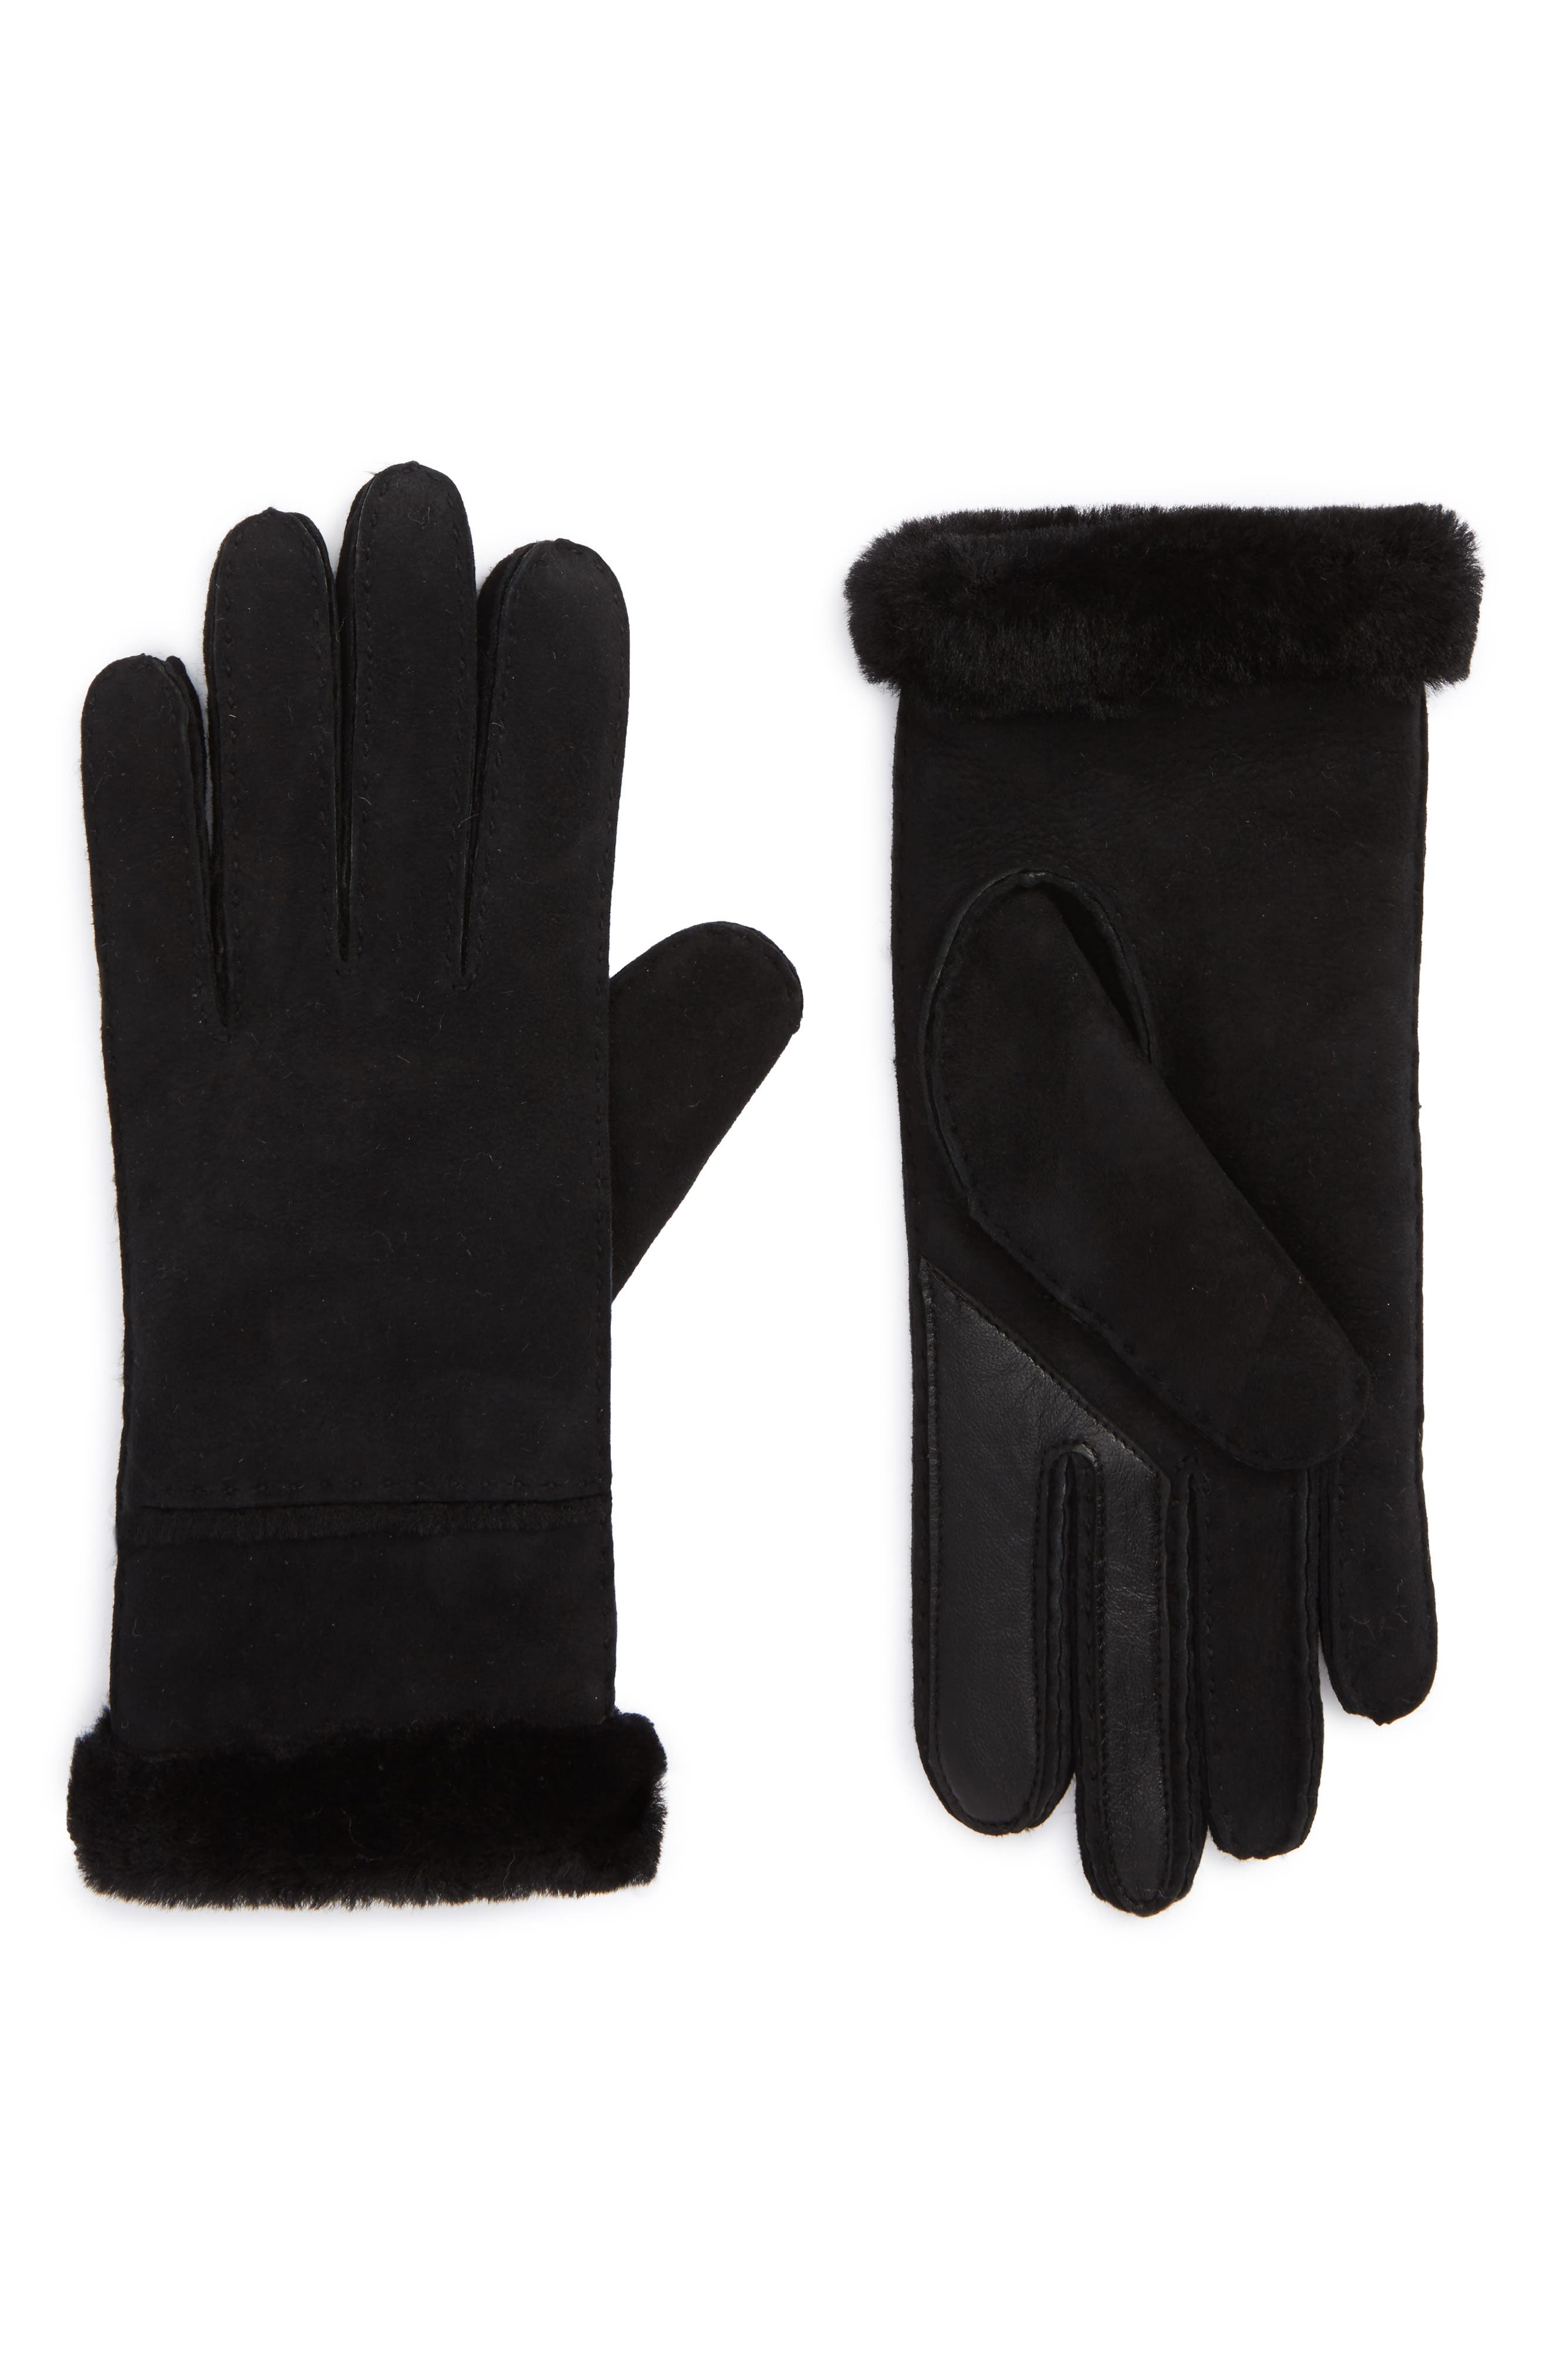 UGG<sup>®</sup> Slim Genuine Shearling Tech Gloves,                             Main thumbnail 1, color,                             001